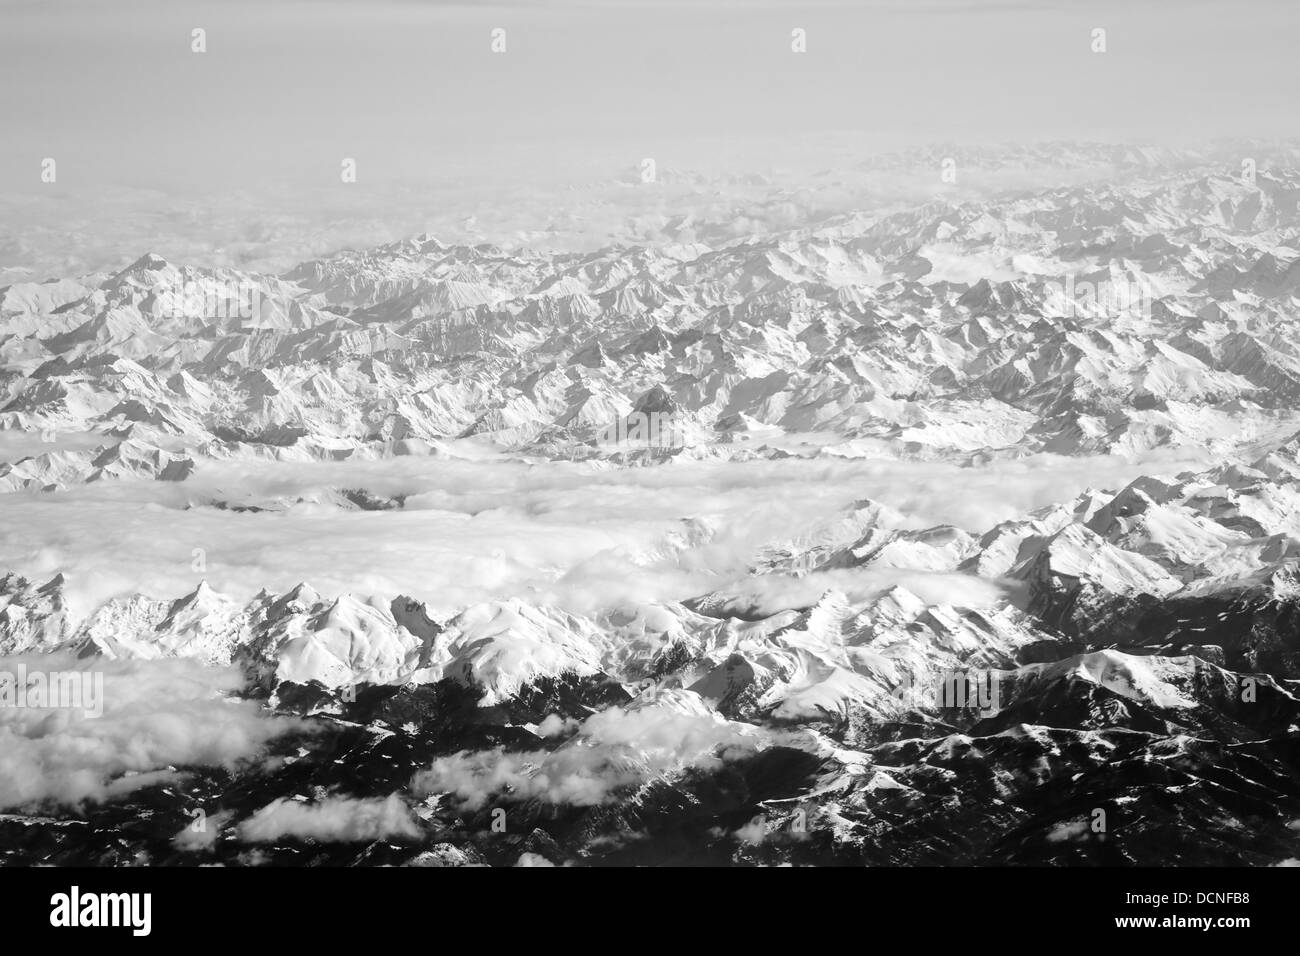 View from the plane over the Alps - Stock Image